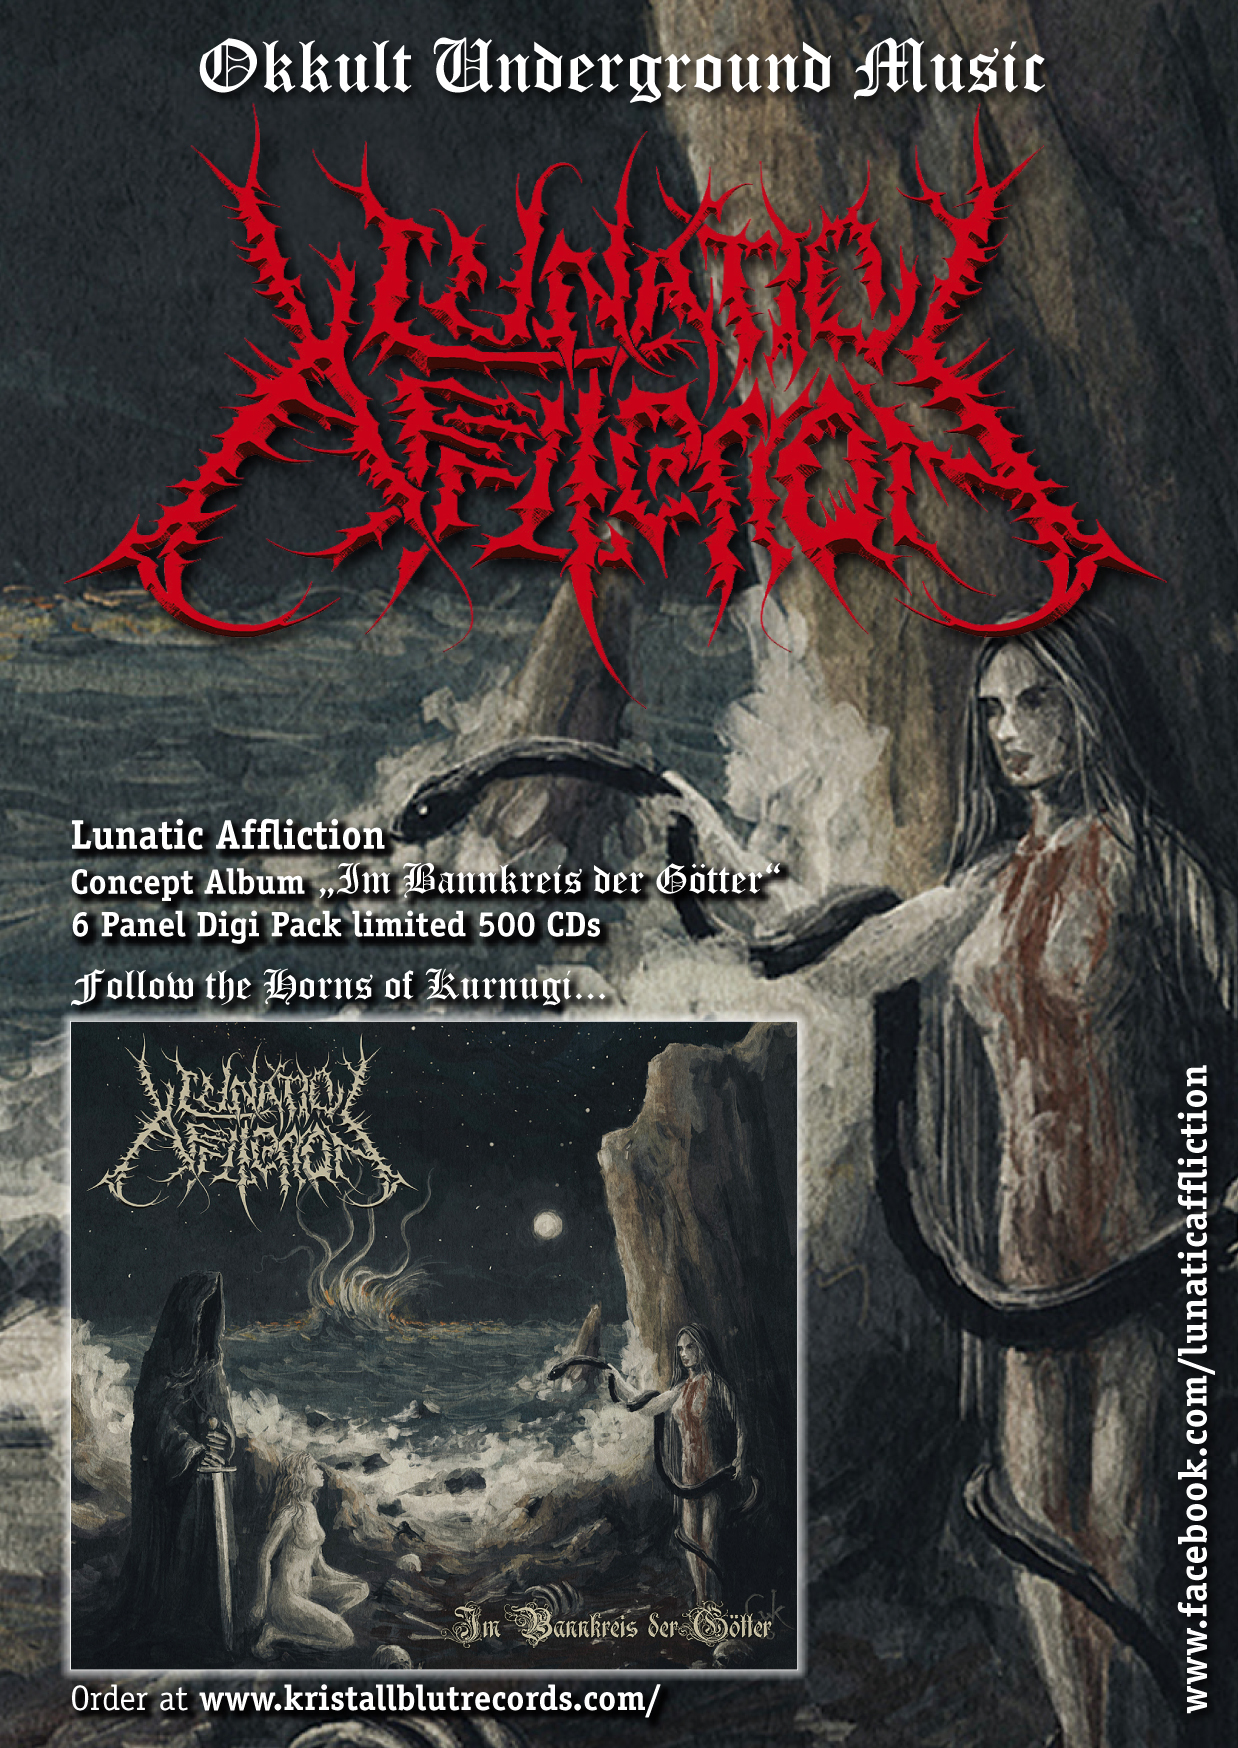 LUNATIC AFFLICTION signed under the banner of Kristallblut Records